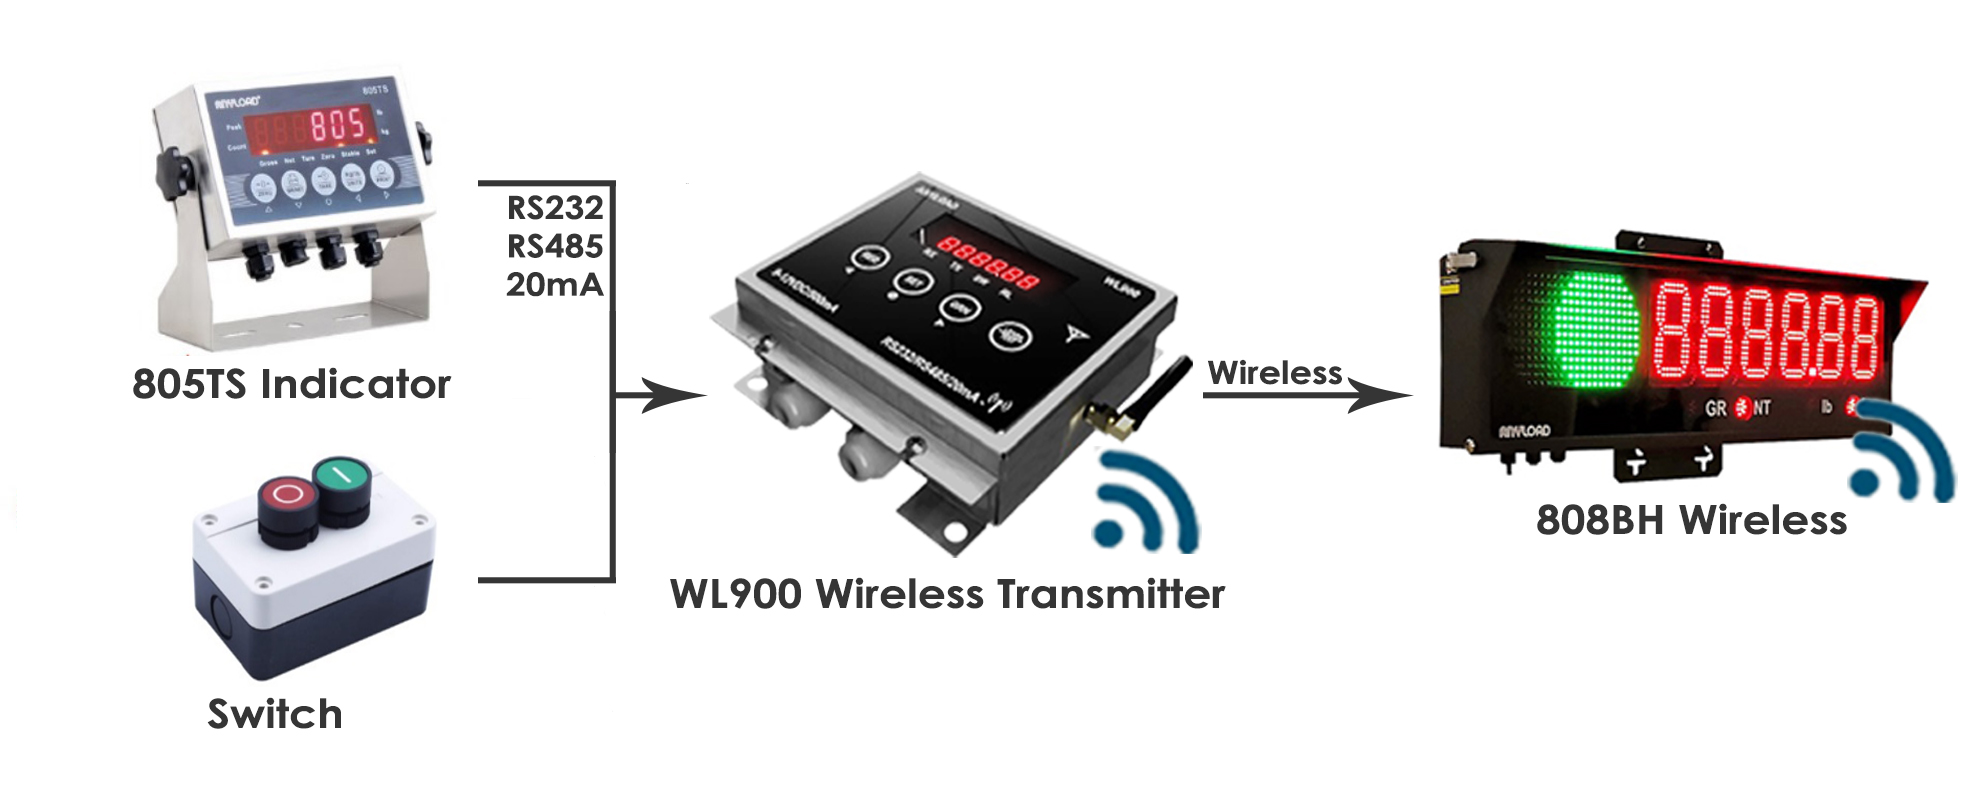 WL900 Application Option # 2